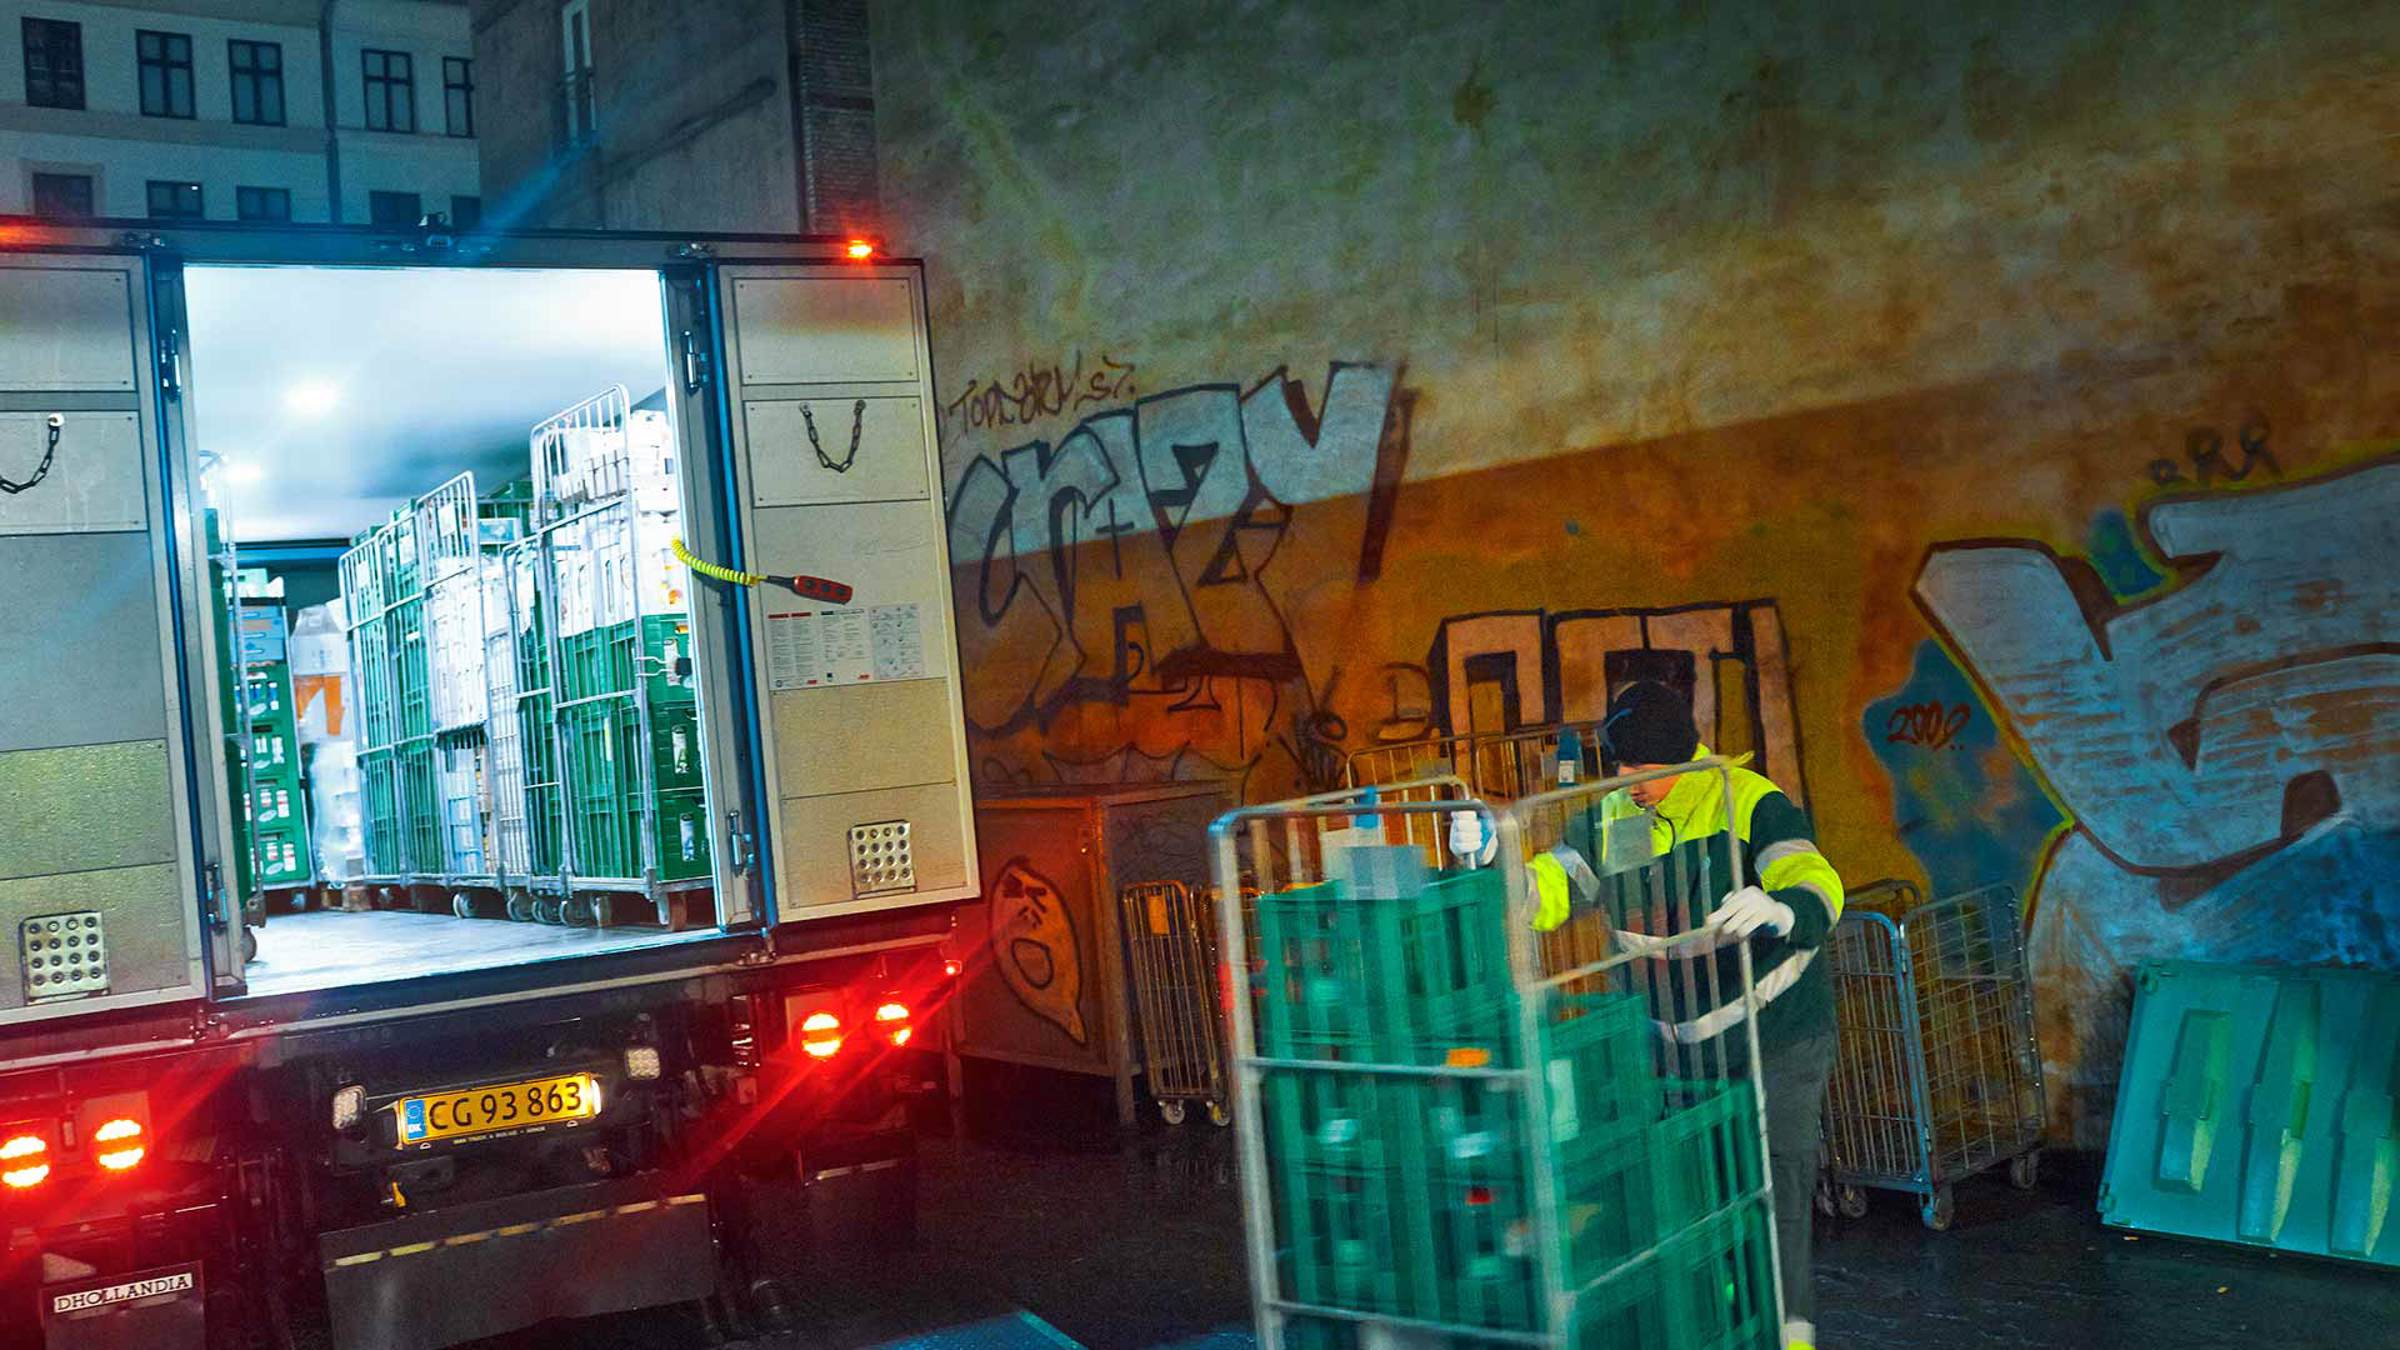 A worker loading trolleys into a truck at night